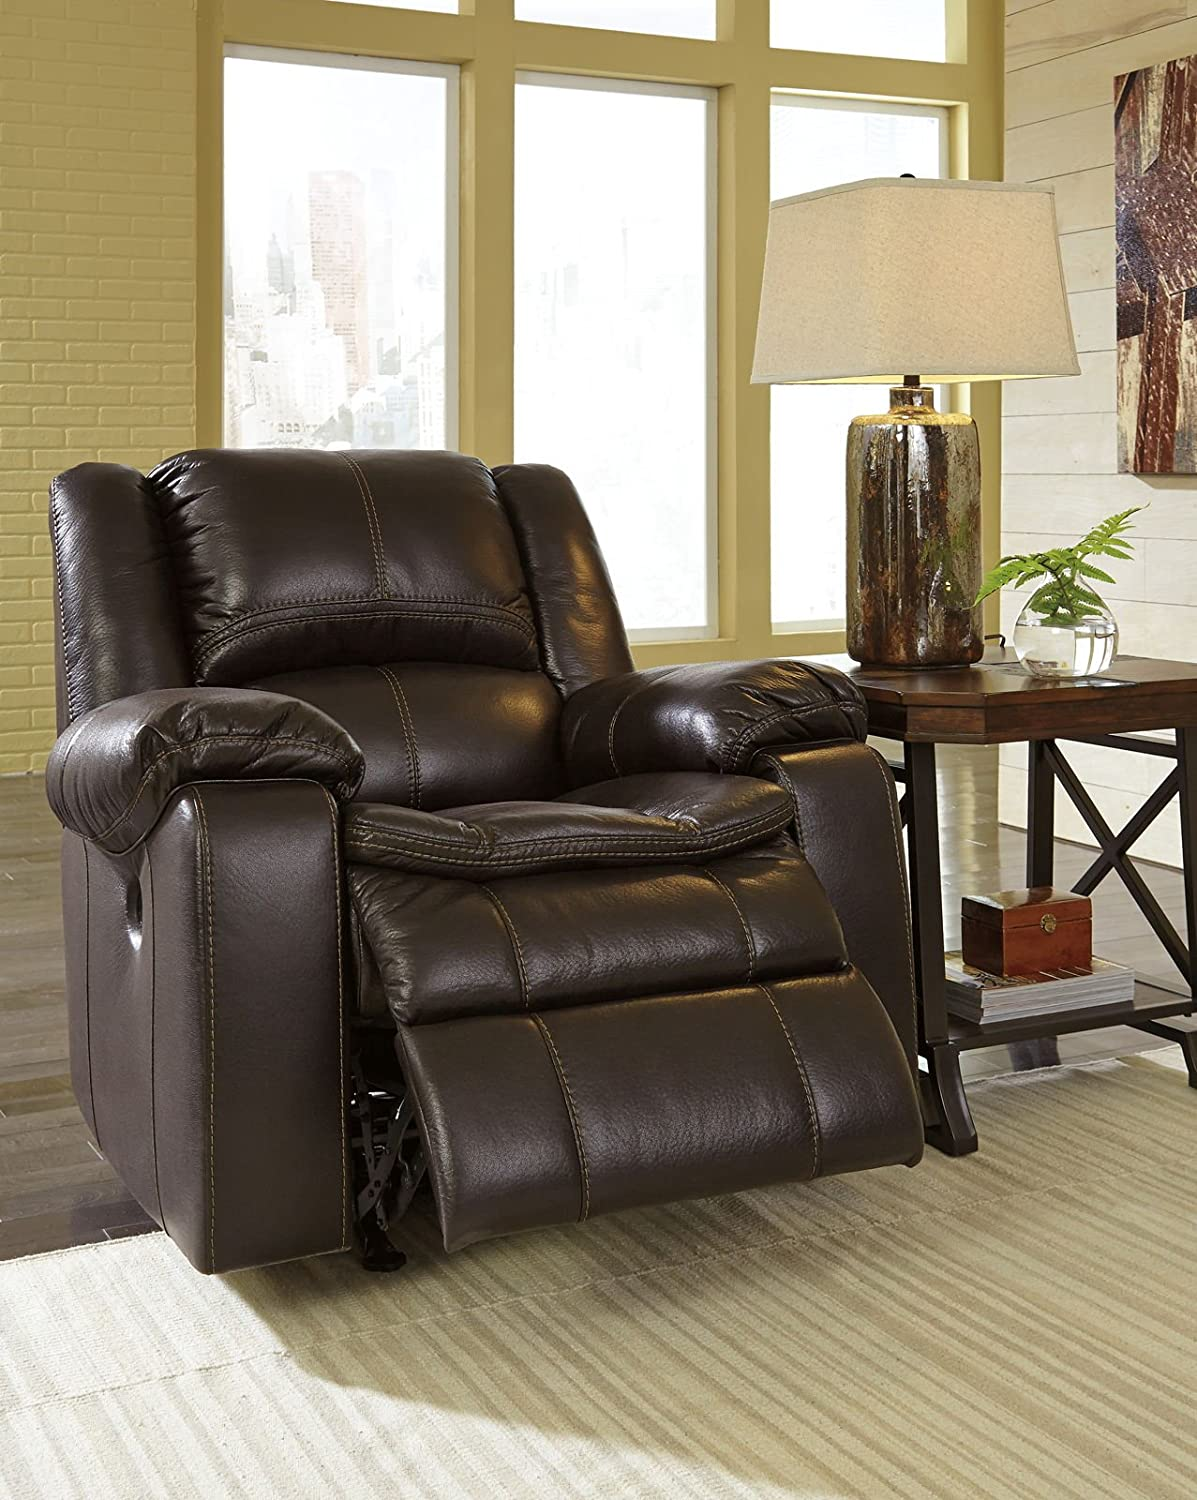 Captivating Amazon.com: Signature Design By Ashley 8890598 Long Knight Collection Power  Recliner, Brown: Kitchen U0026 Dining